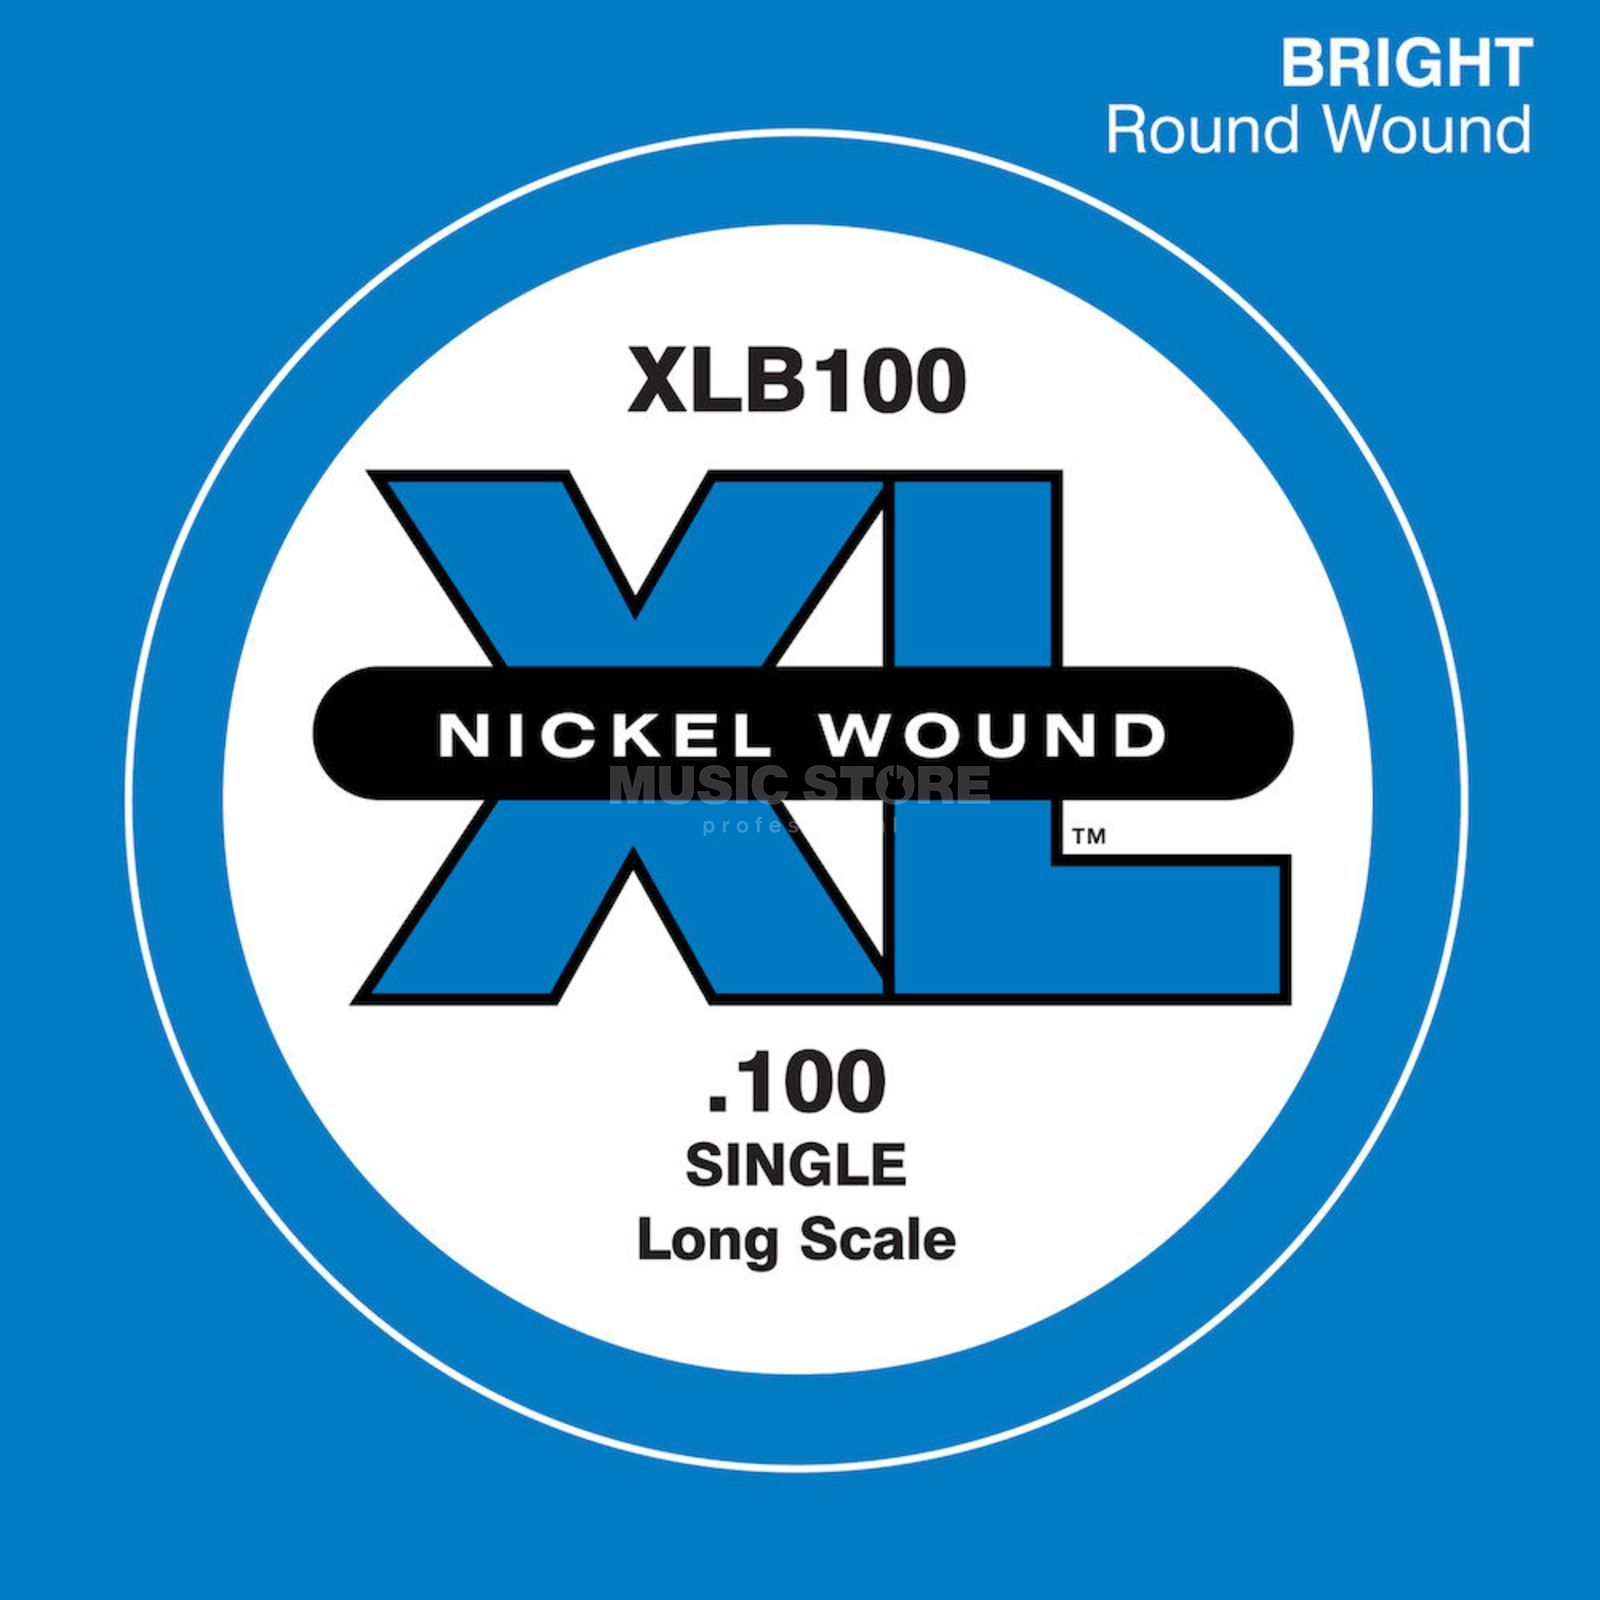 D'Addario Bass Single String XLB100 XL Nickel Wound Product Image